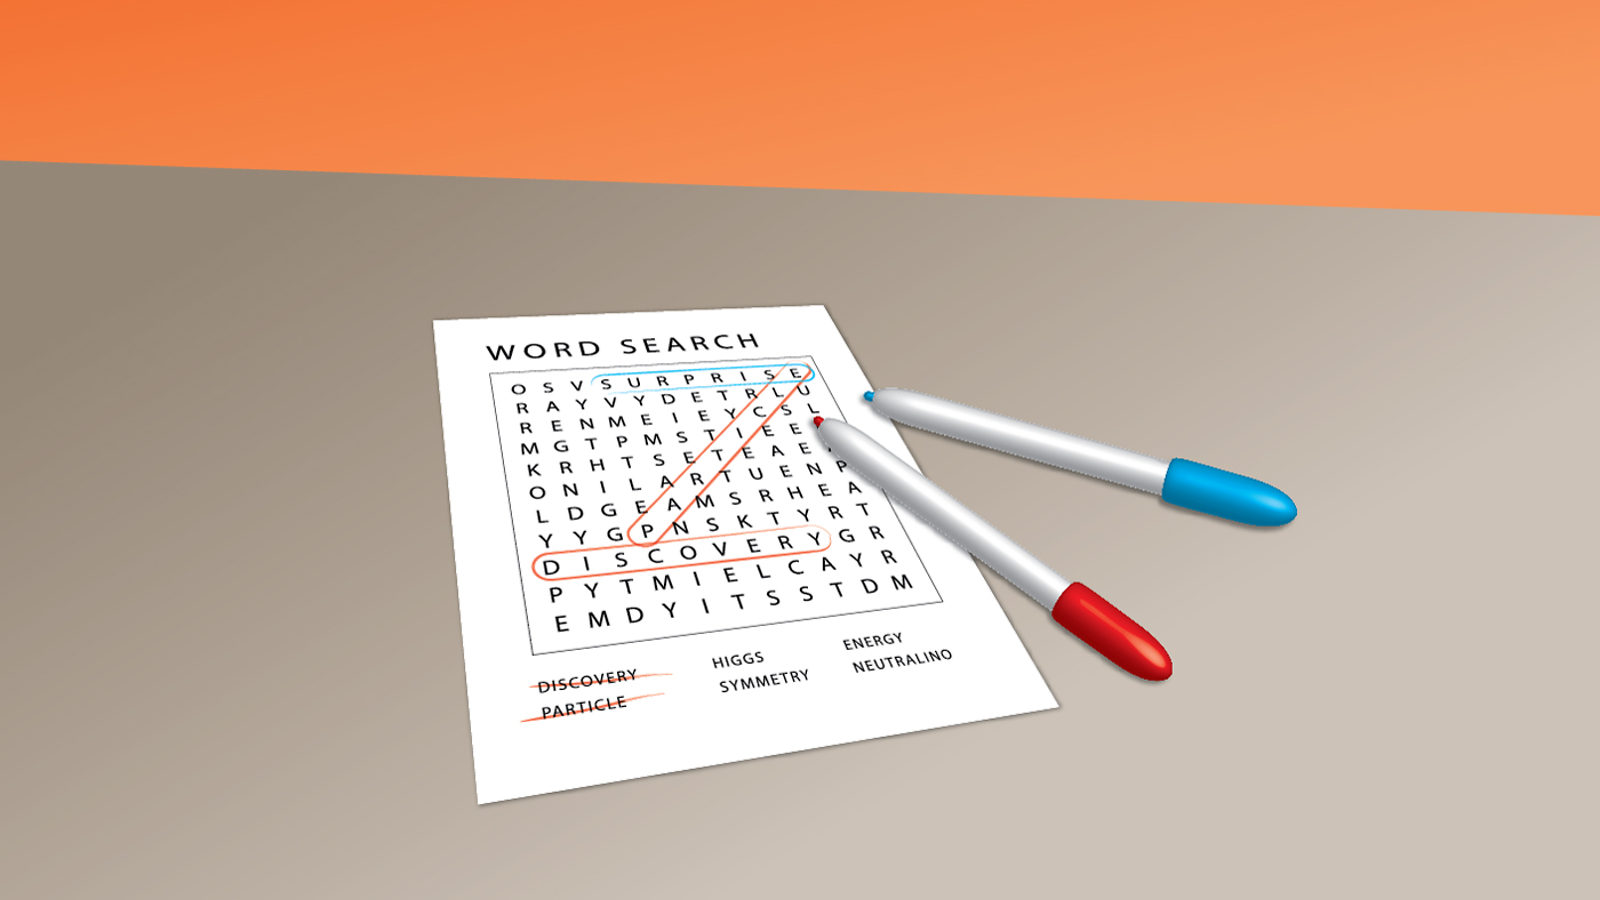 Illustration of word search paper with red and blue pens laying on top of paper